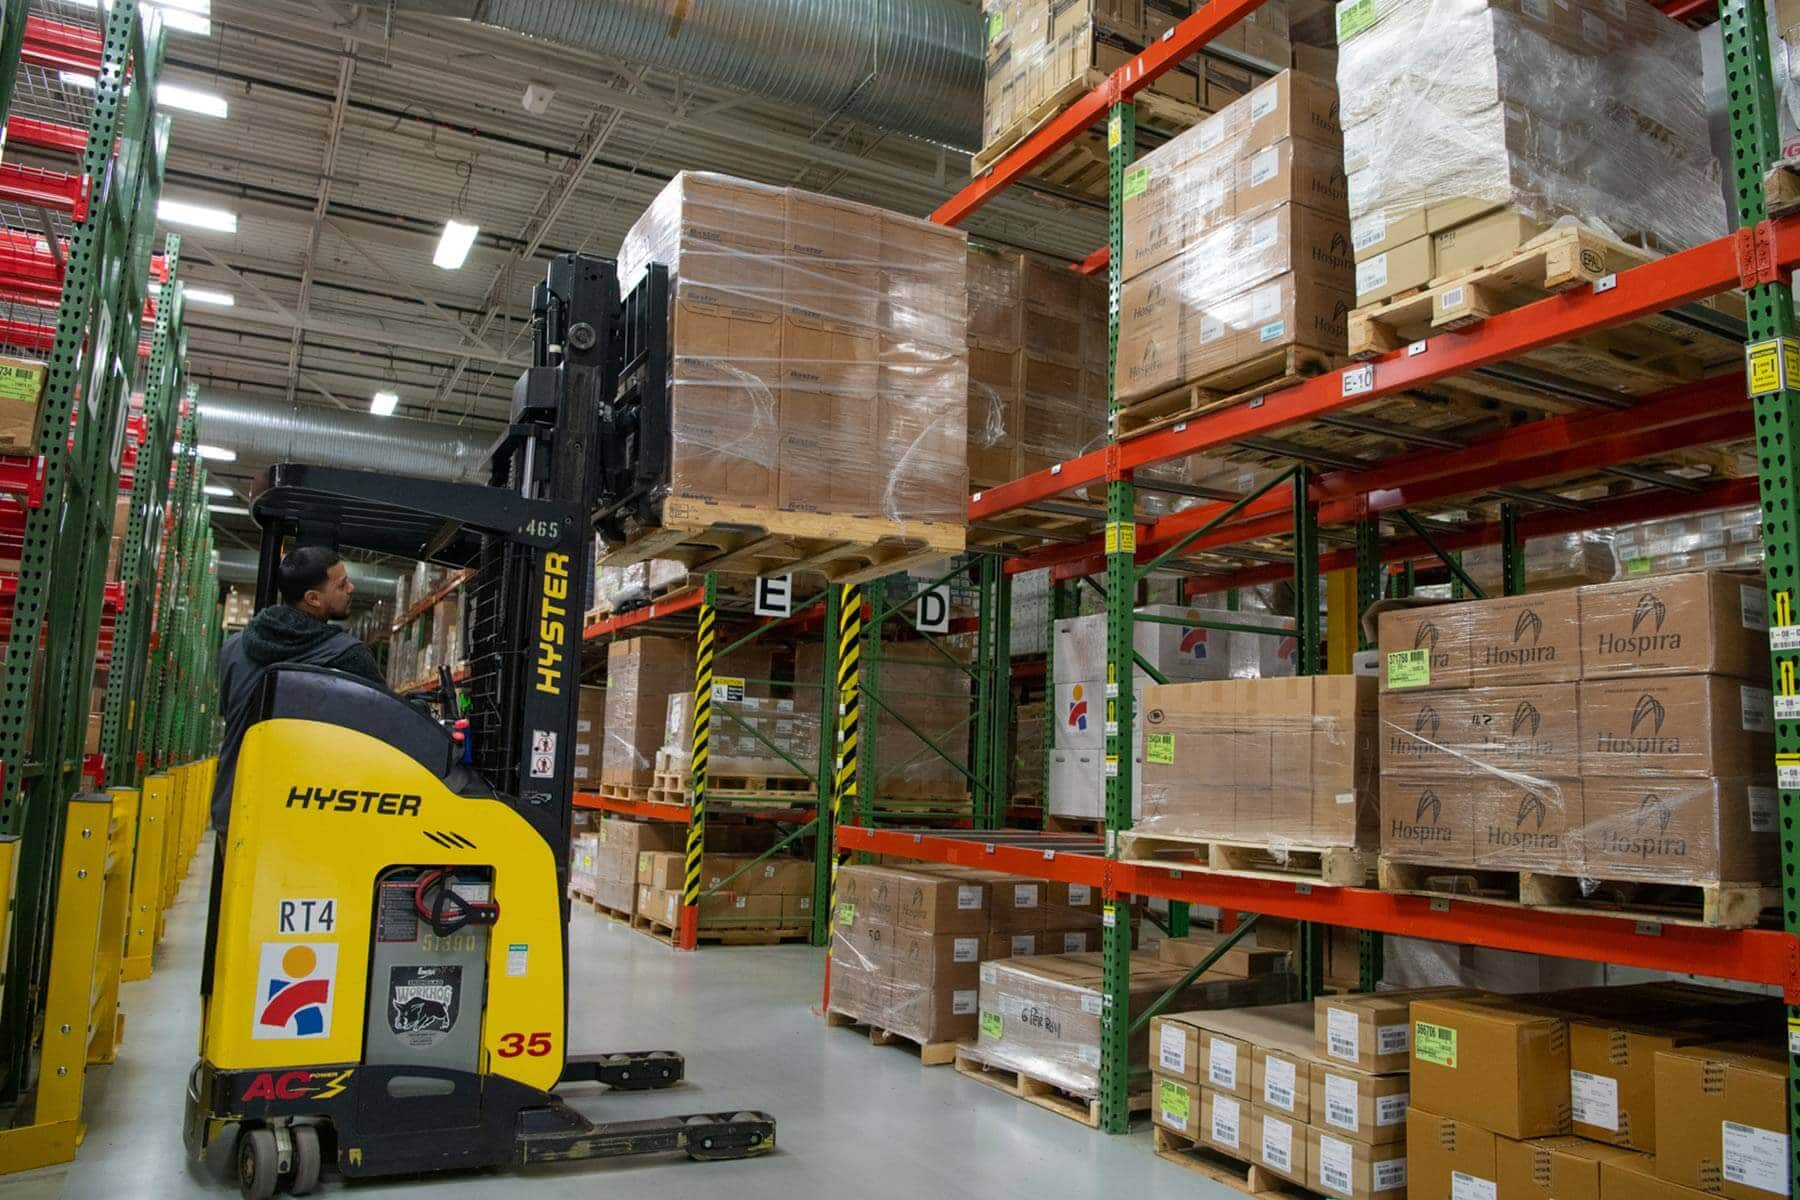 Workers at Americares distribution center in Stamford, Conn., prepare a shipment of life-saving medicine to help families in war-torn Syria. Photo by Chris Williams/Americares